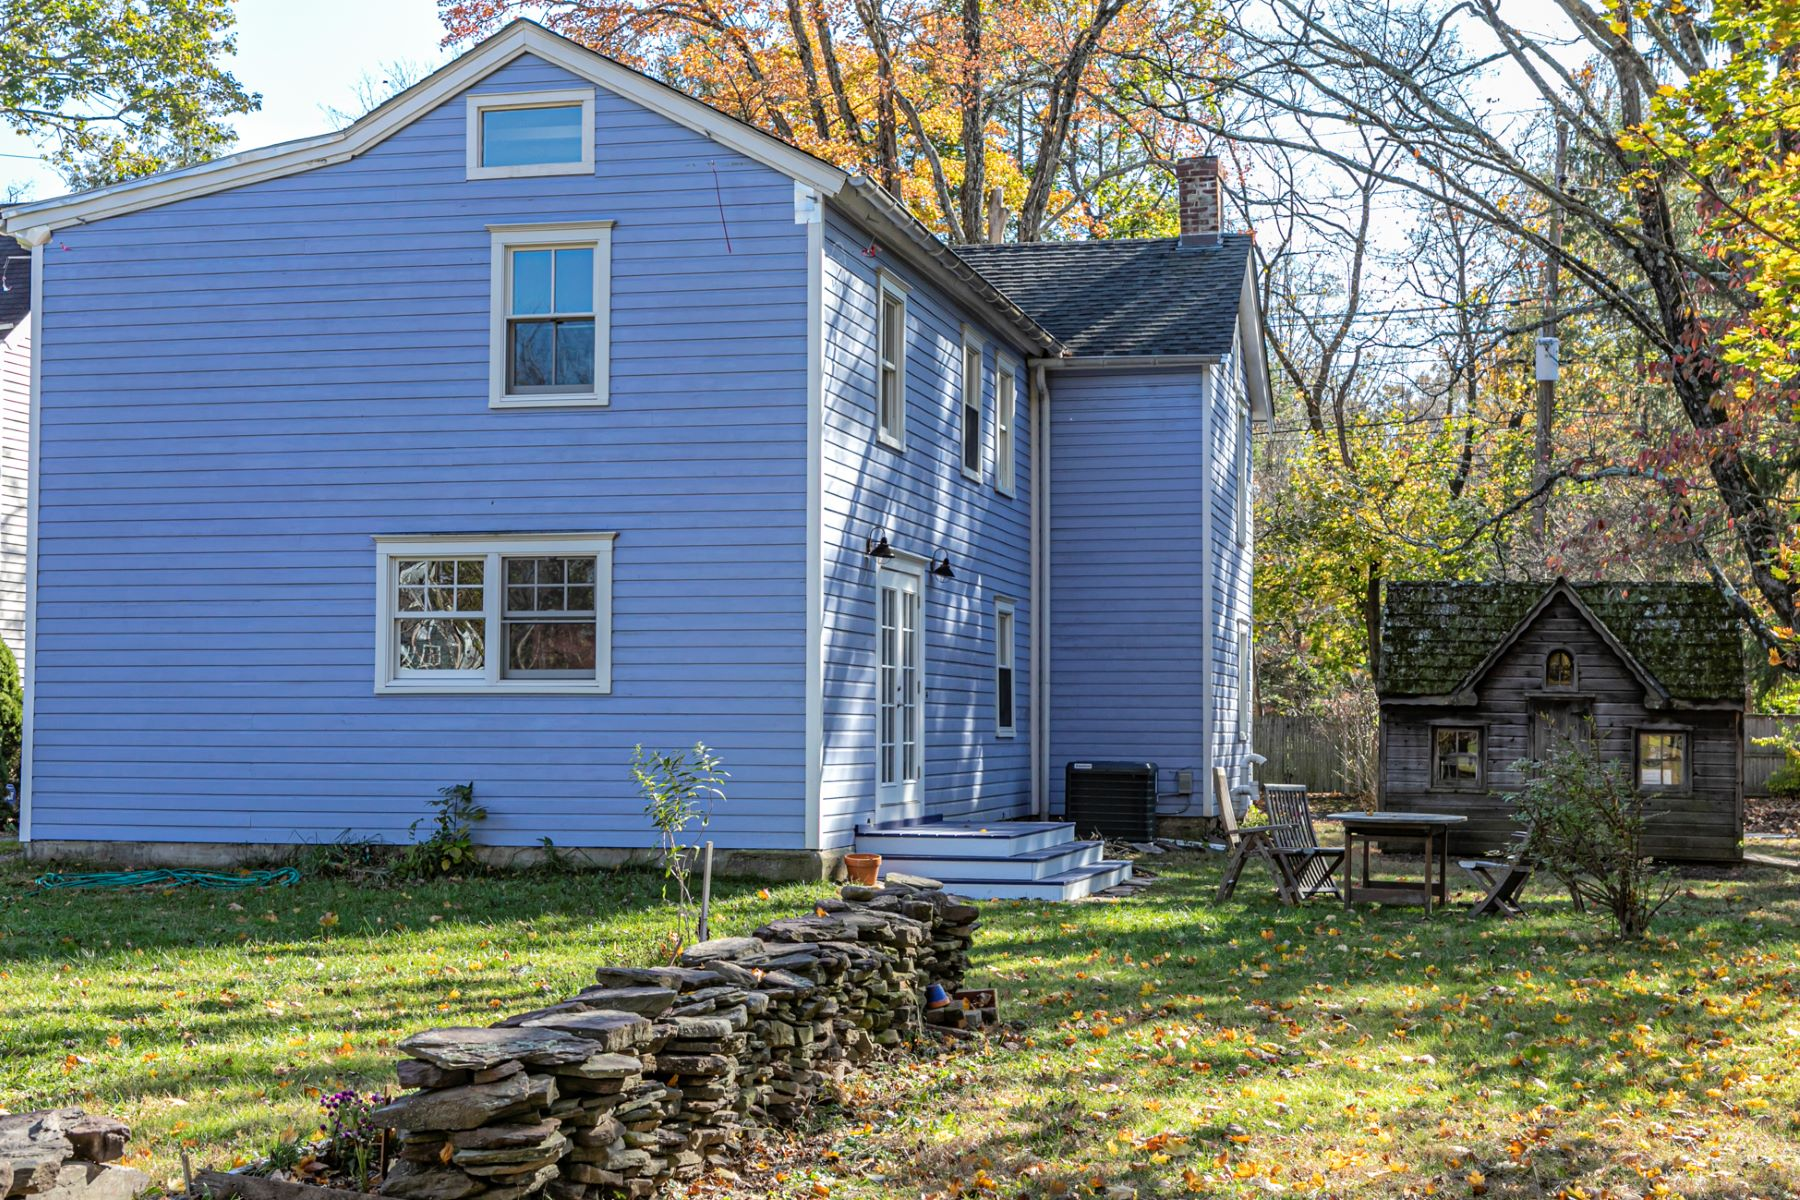 Additional photo for property listing at A True Colonial Home Full of Cheerful Surprises 115 Mountain Avenue, Princeton, Νιου Τζερσεϋ 08540 Ηνωμένες Πολιτείες